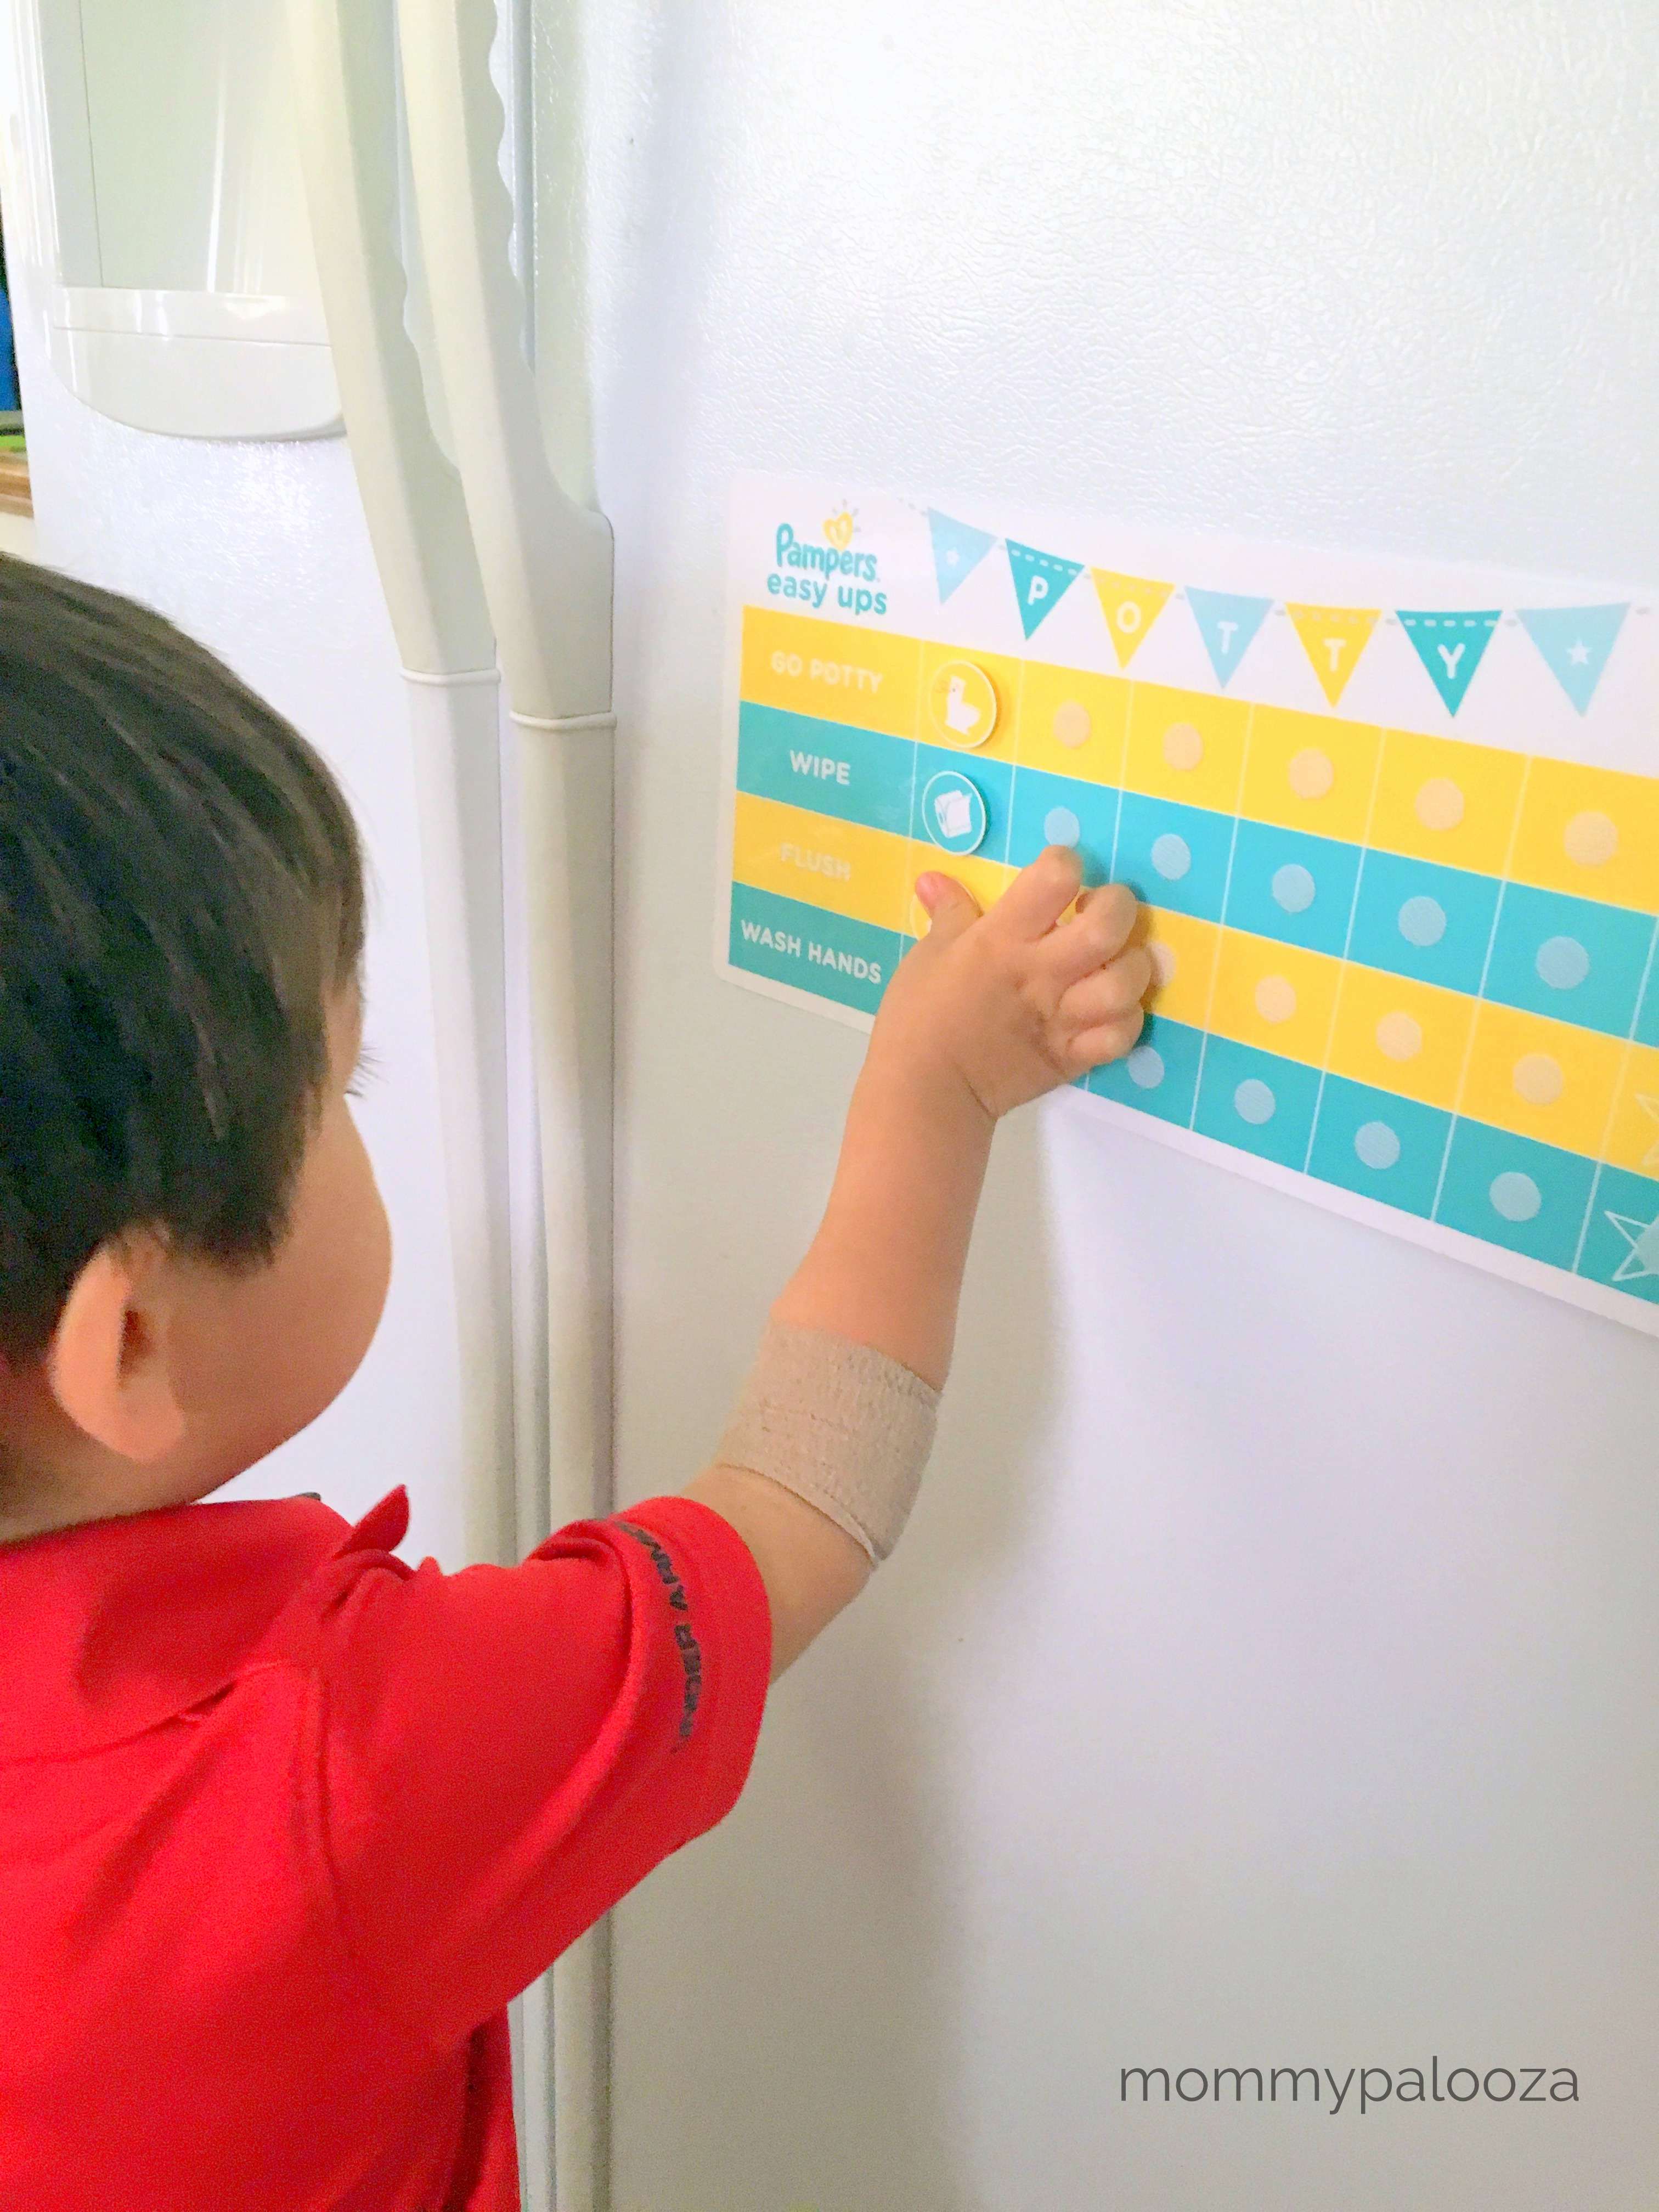 Potty Training Party and Tips with Pampers Easy Ups #PampersEasyUps